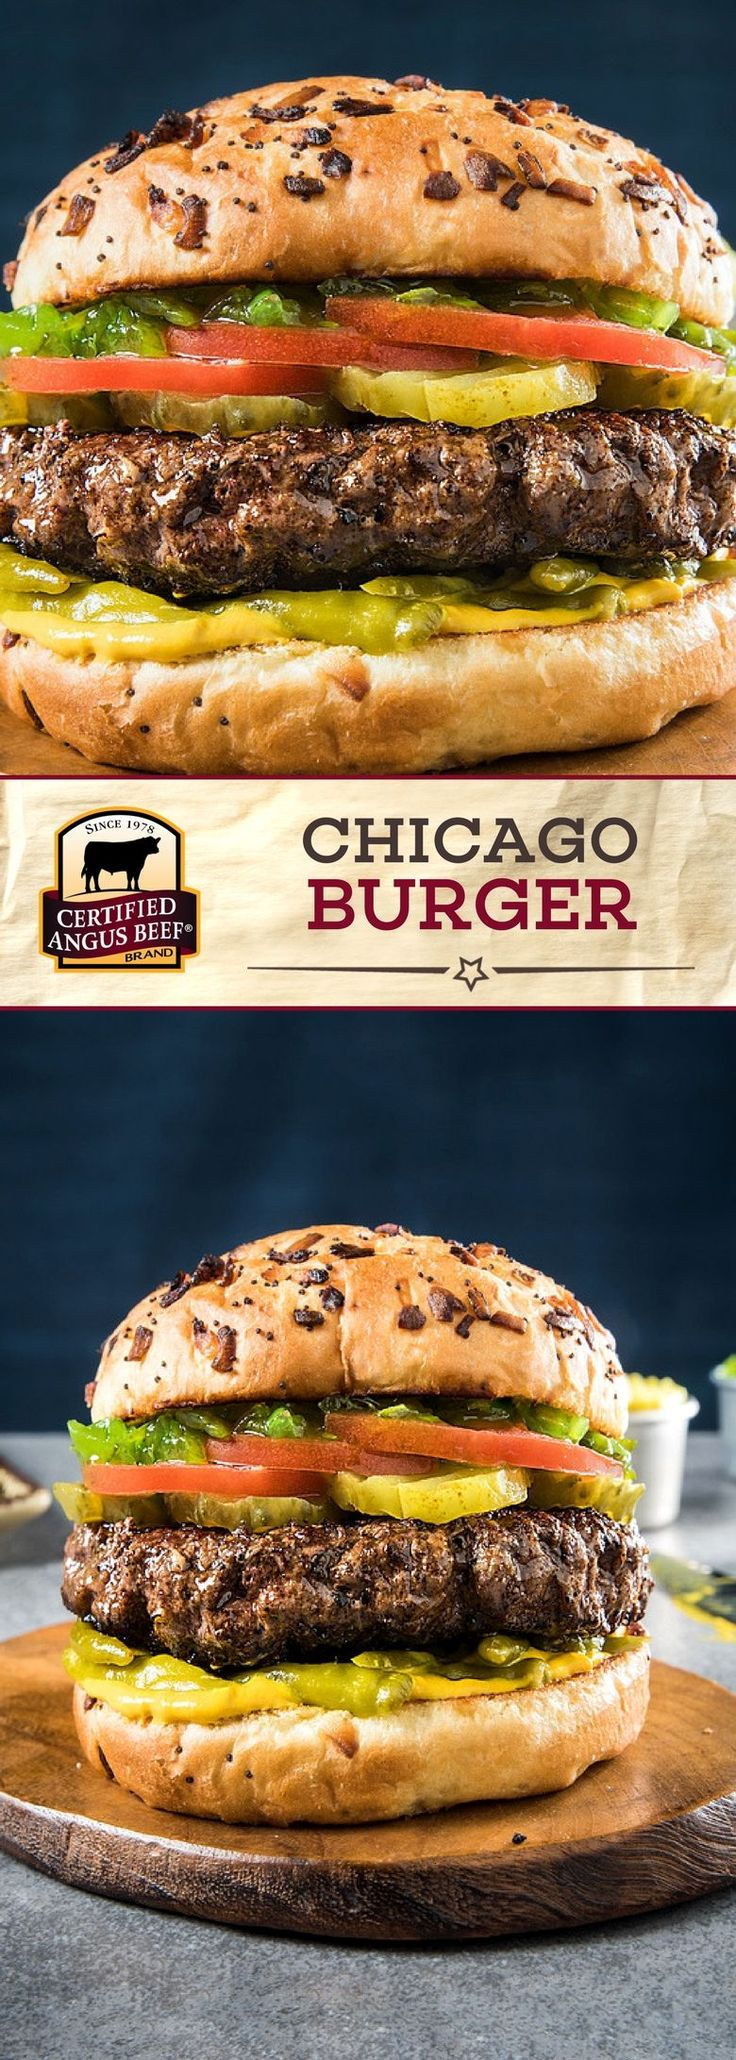 The Chicago Burger is a Certified Angus Beef®️ brand lean ground beef burger that is PACKED with flavor! The BEST ground beef is mixed with celery salt and black pepper before being pan seared or grilled. Complete each burger with pickles, tomato, neon relish, and poppy seed buns for a DELICIOUS burger recipe!